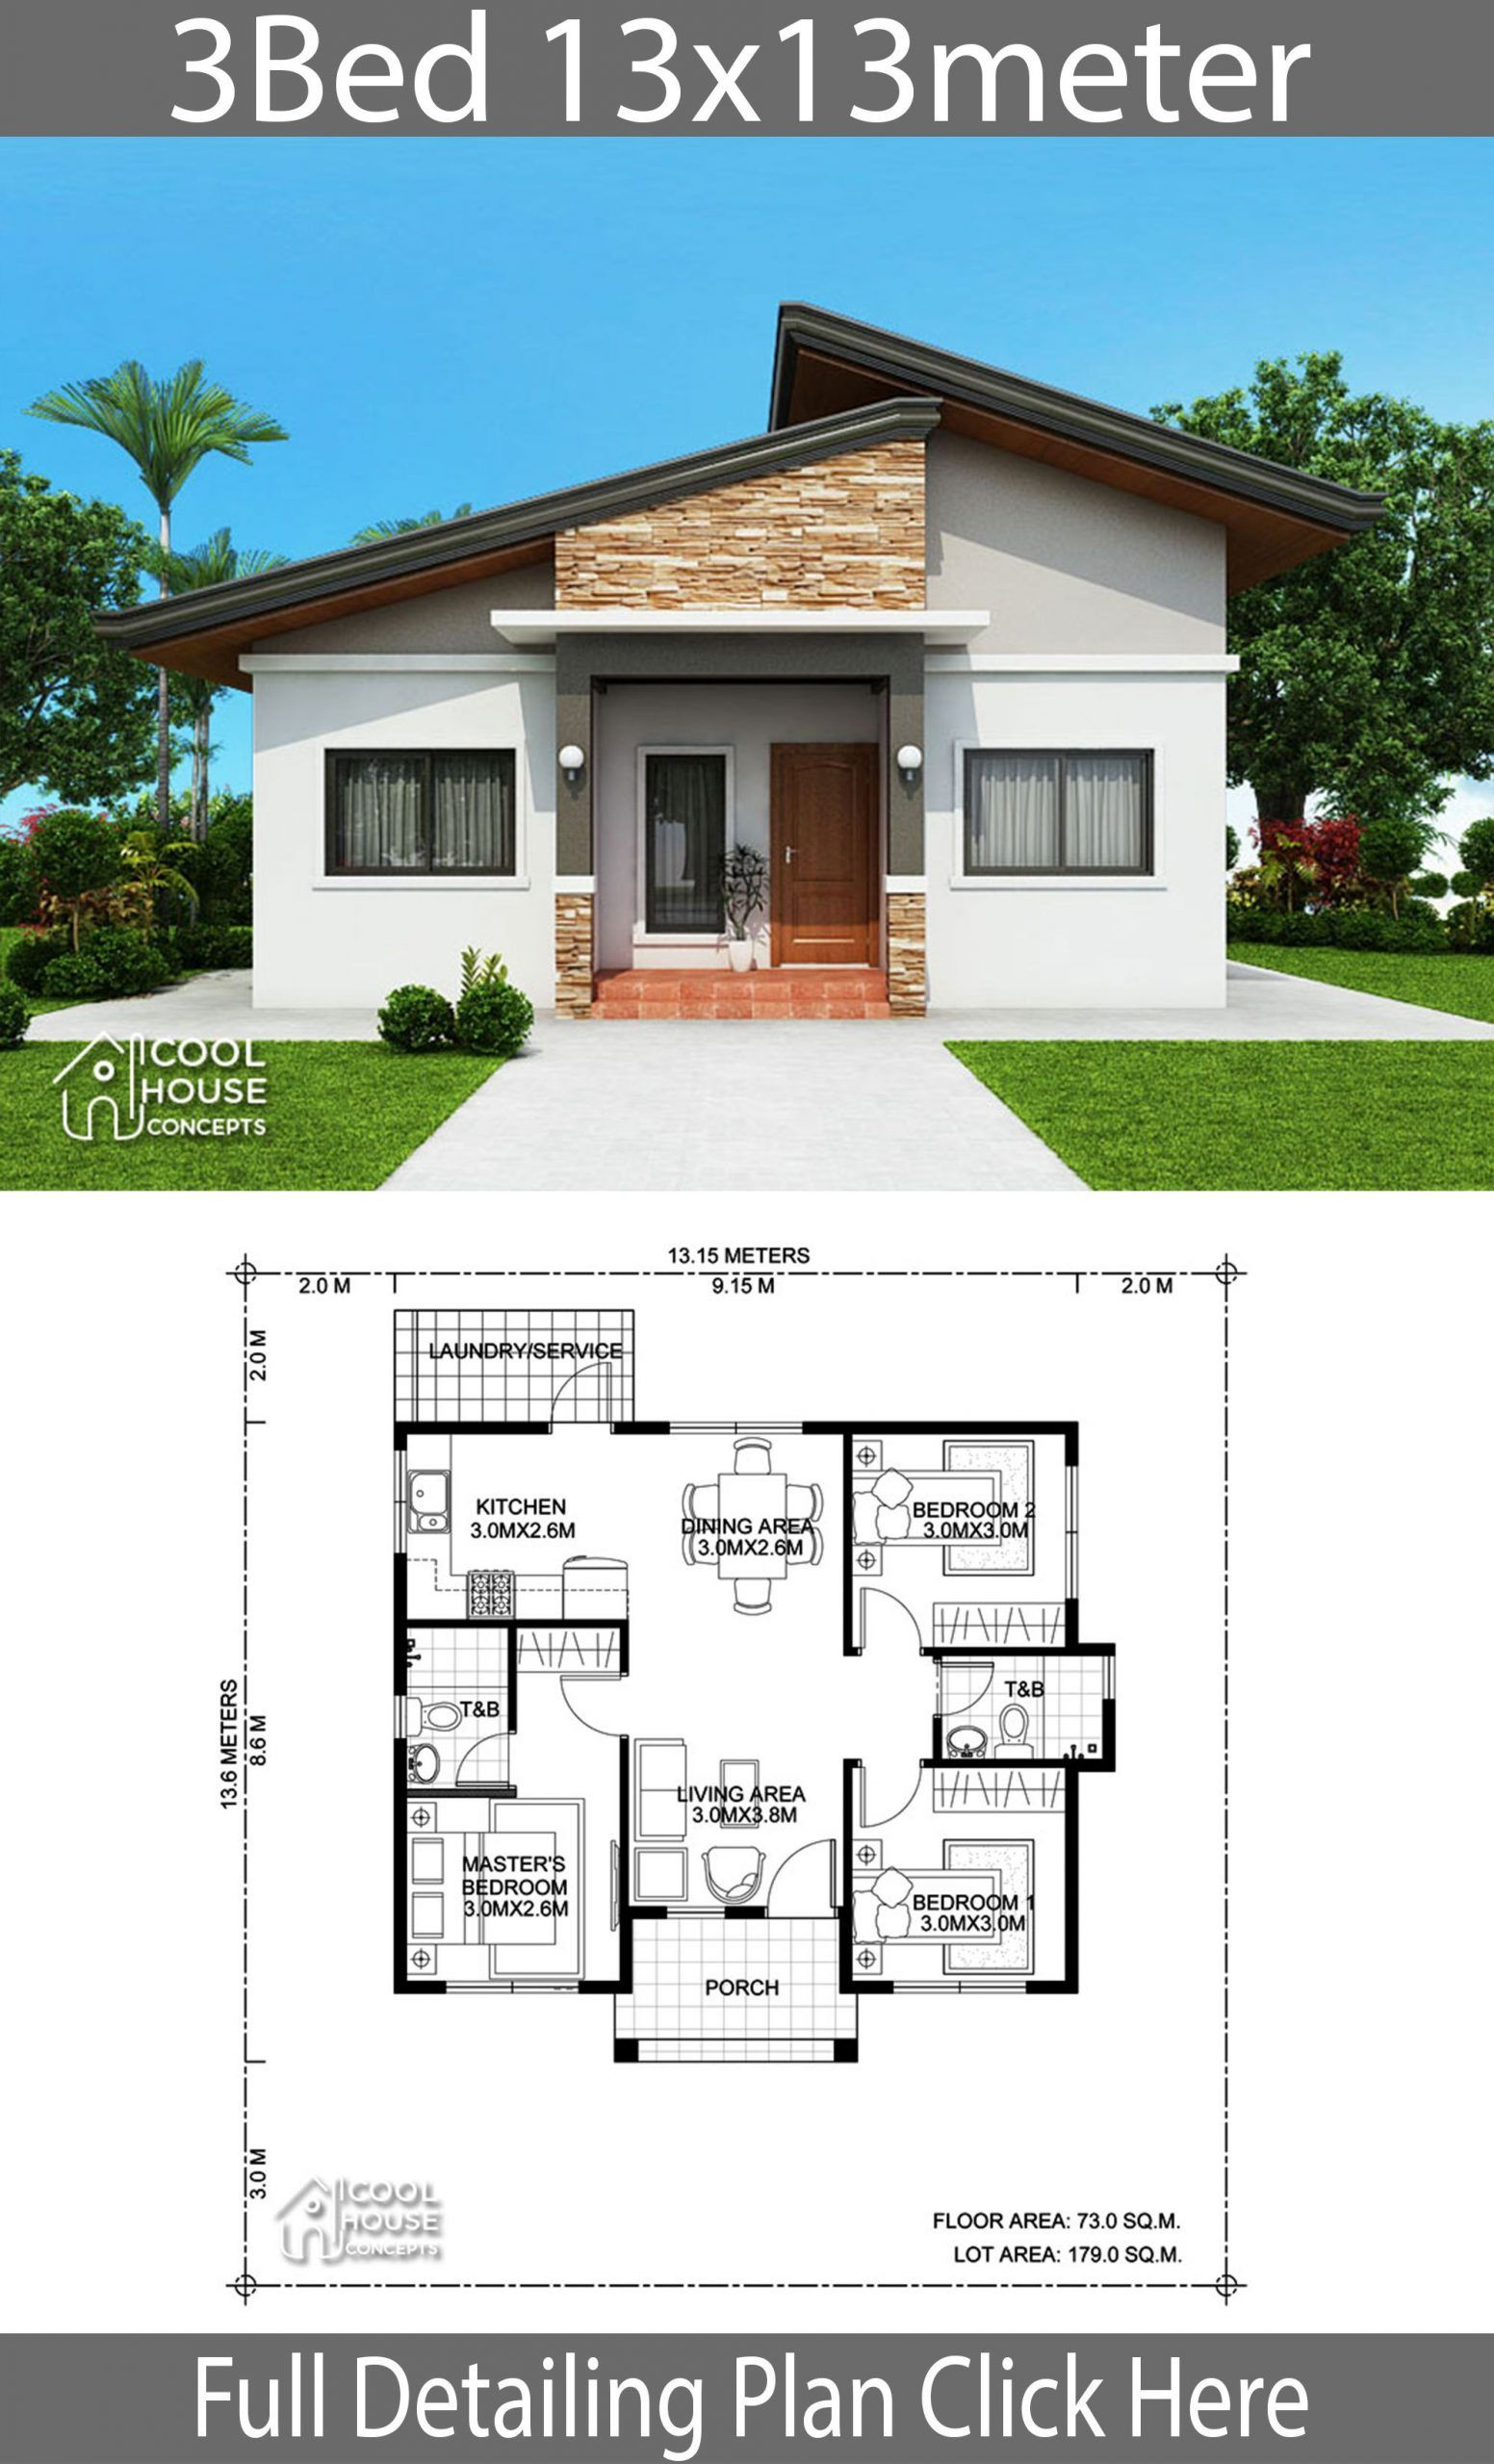 5 Home Plans 11x13m 11x14m 12x10m 13x12m 13x13m With Images Modern Bungalow House House Plan Gallery Simple House Design